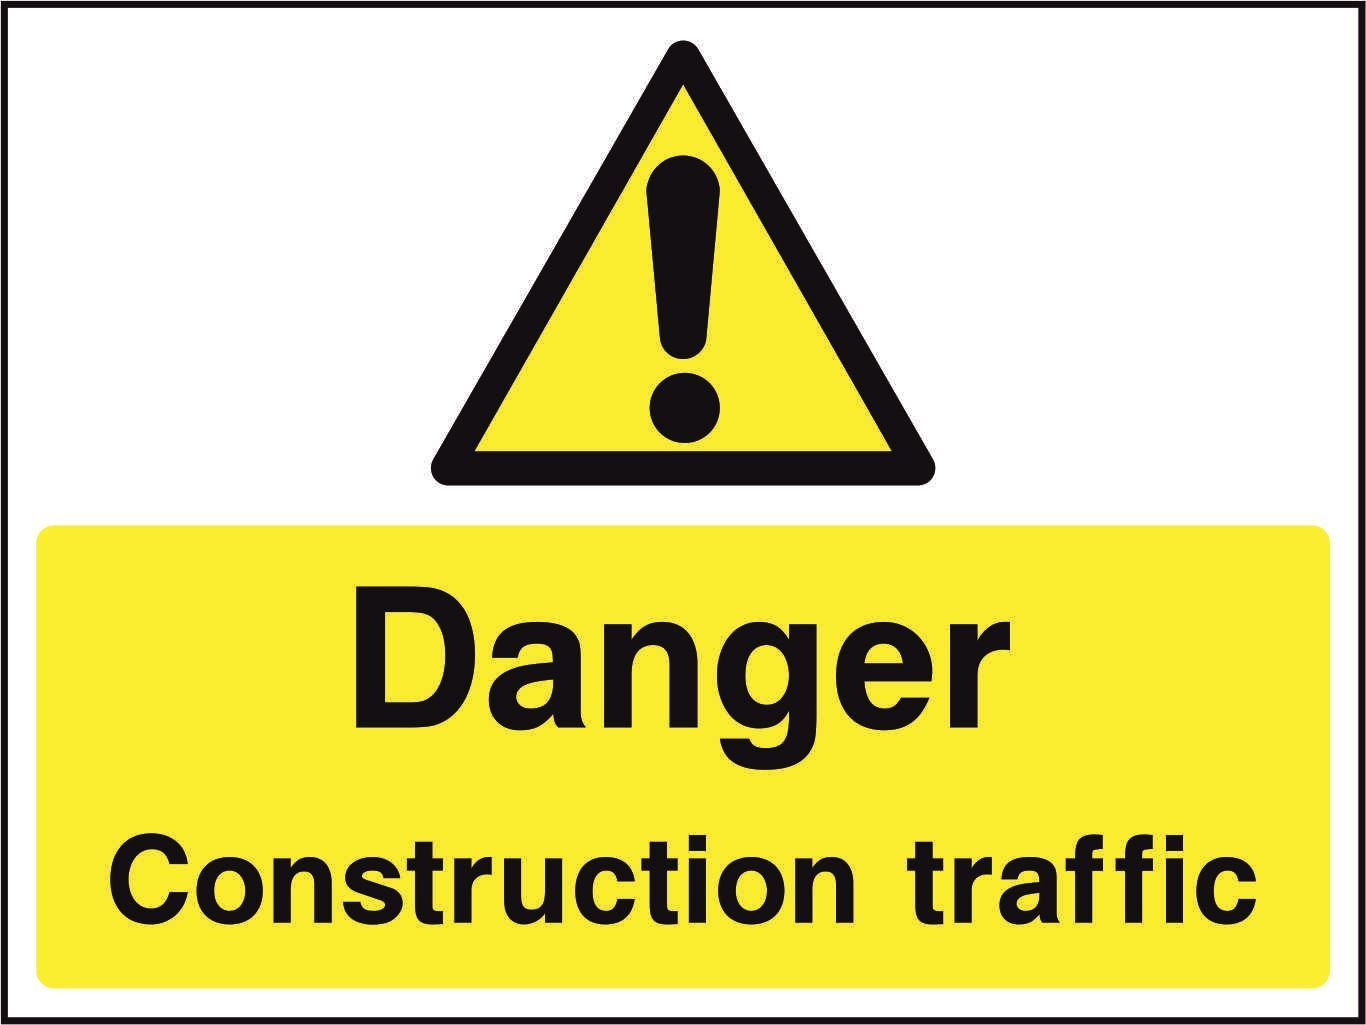 Danger Construction traffic